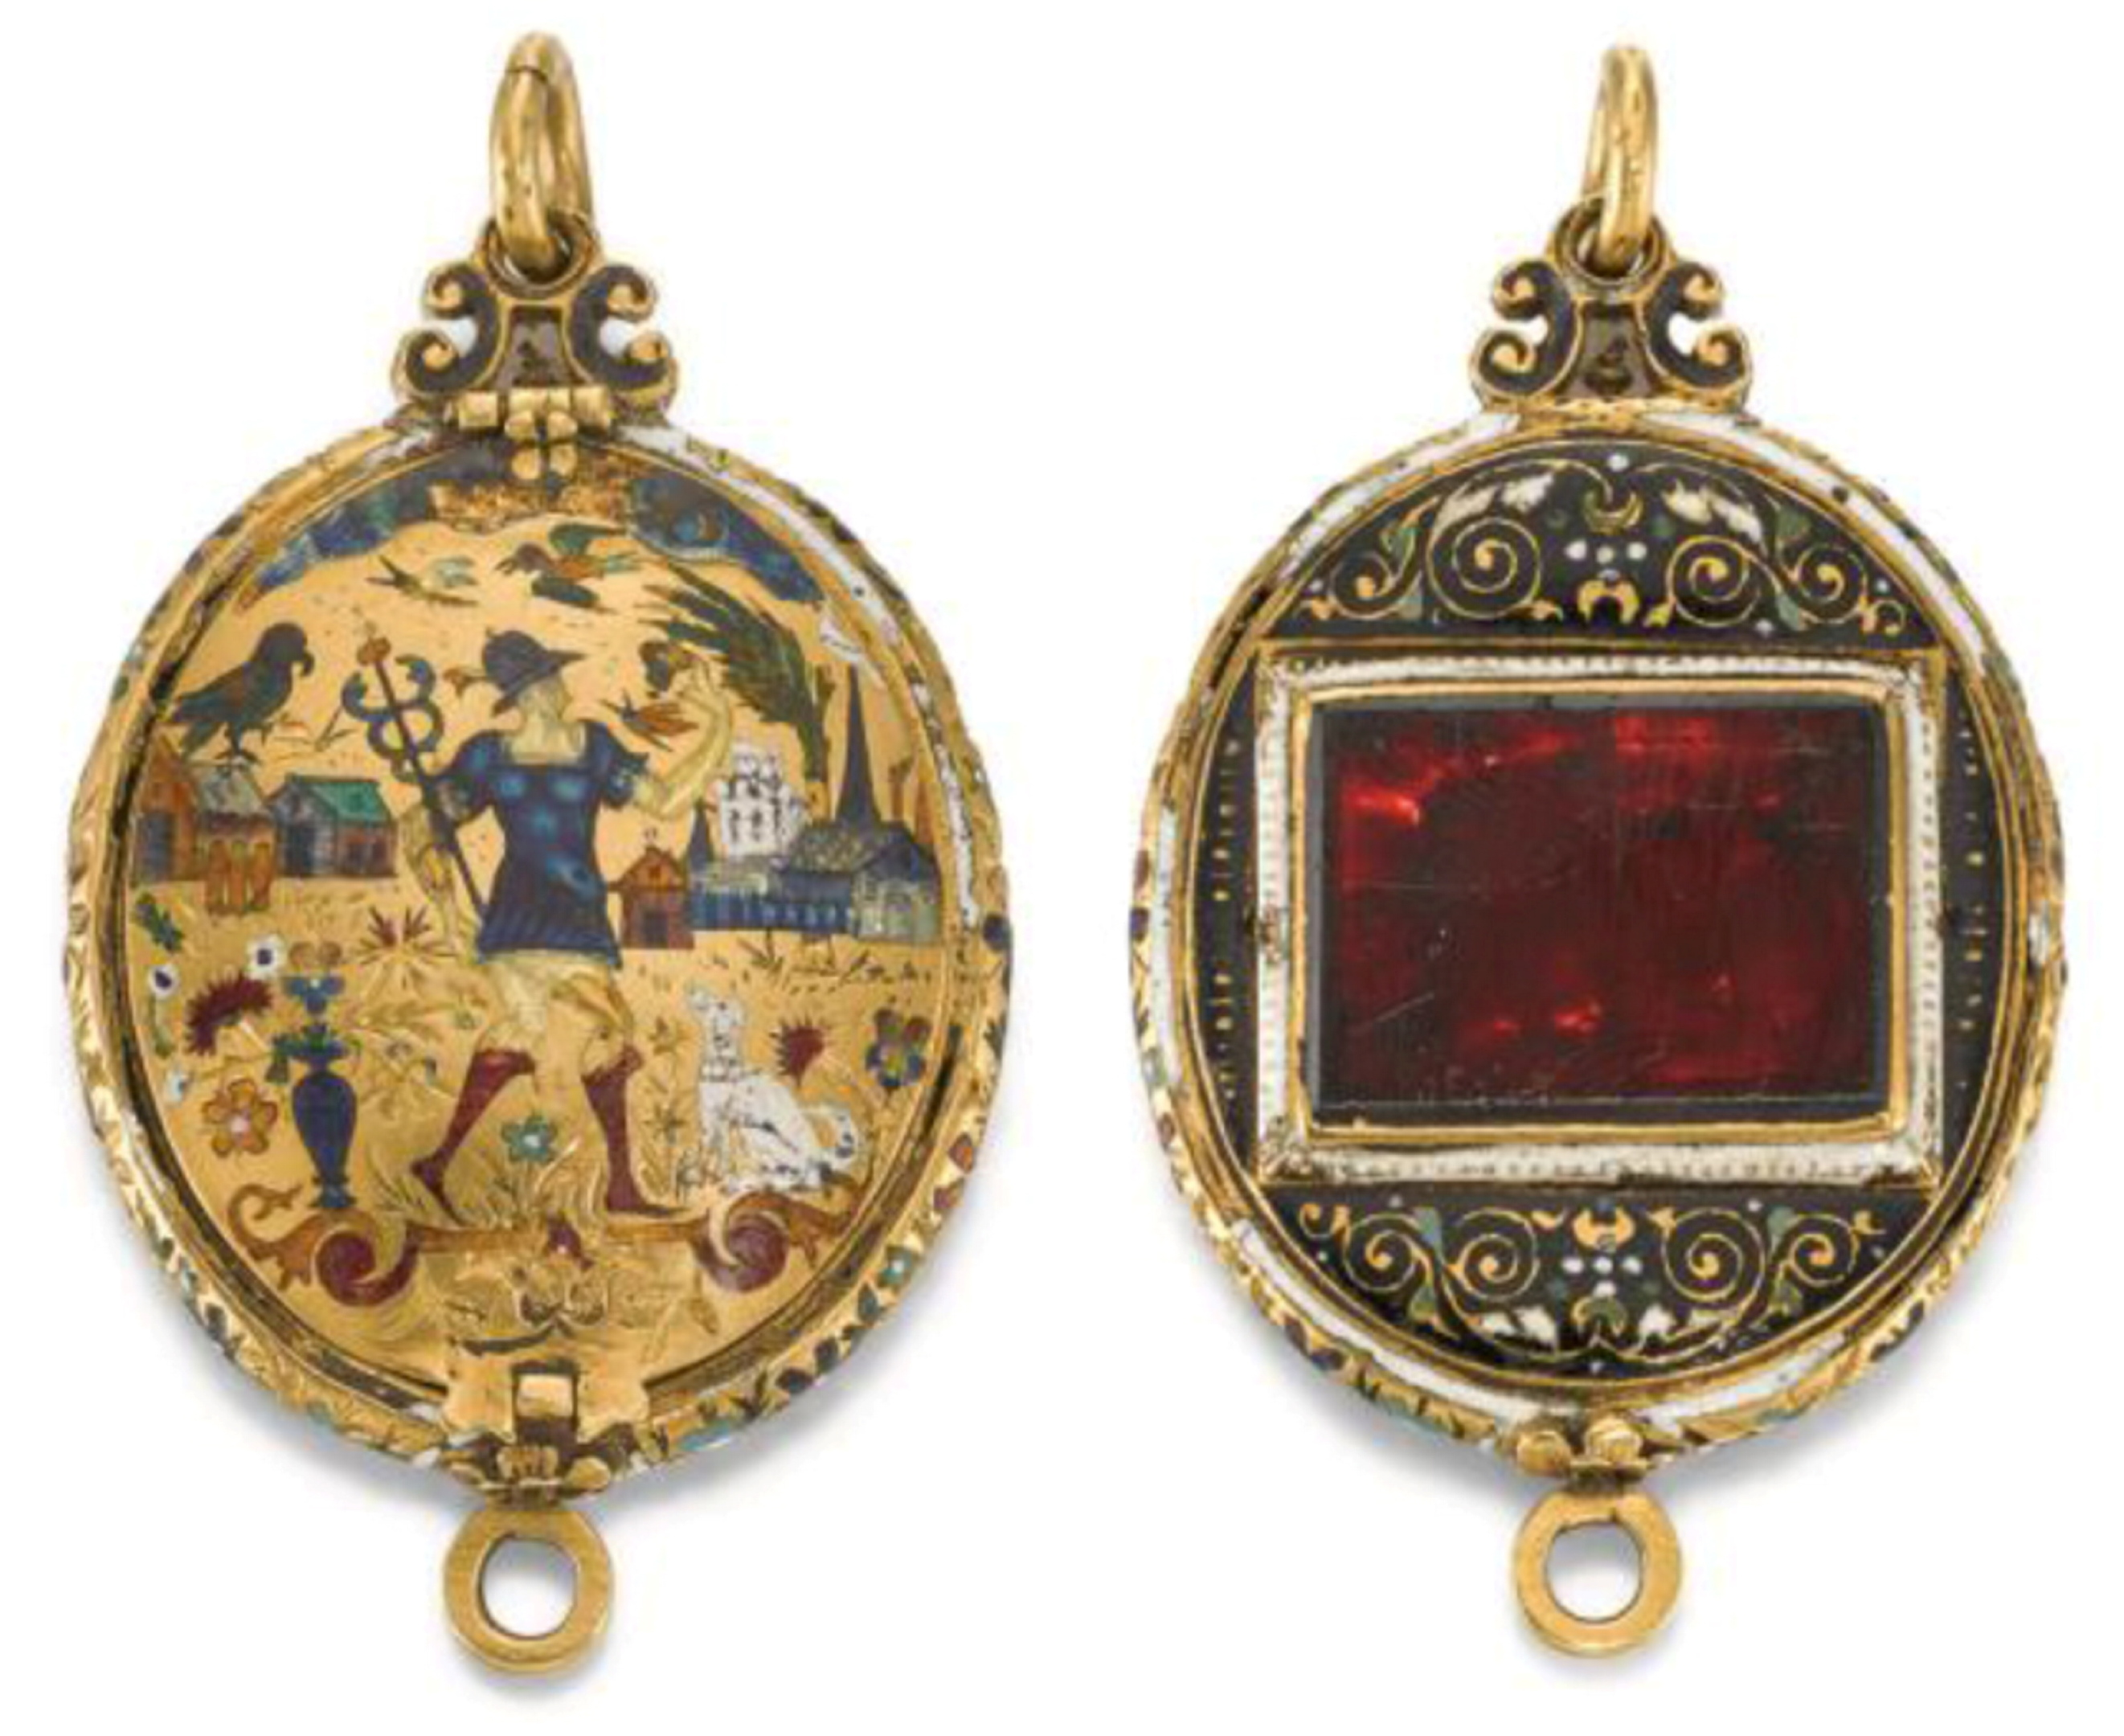 The enamelled gold pendant locket set with an almandine garnet.